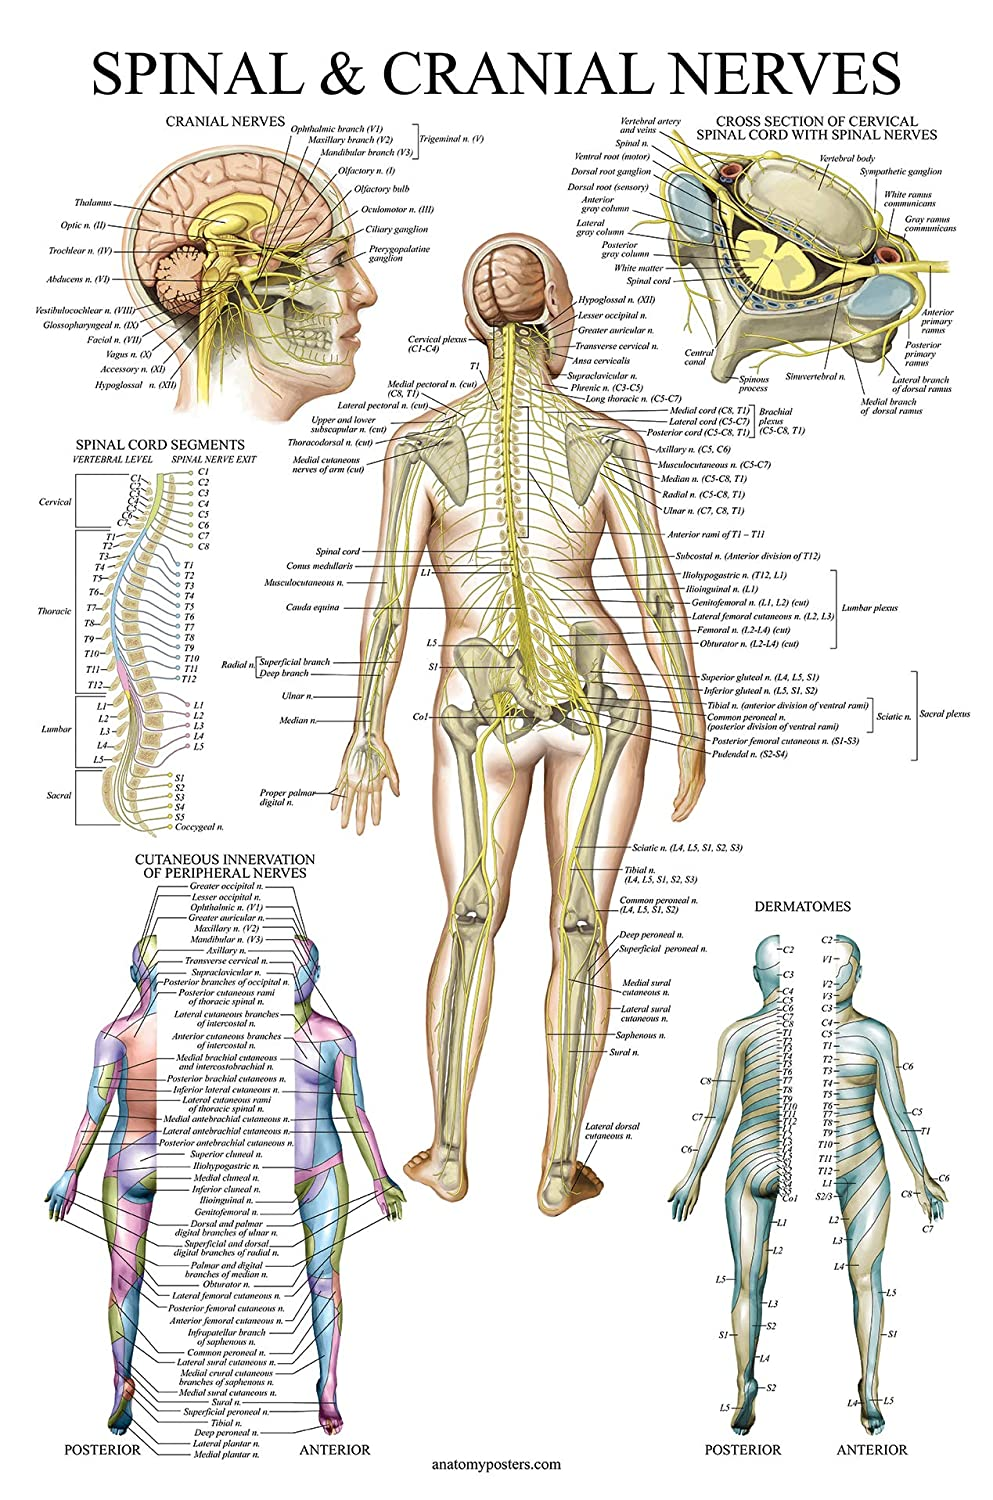 Spinal Nerves Anatomical Chart Spine And Cranial Nervous System